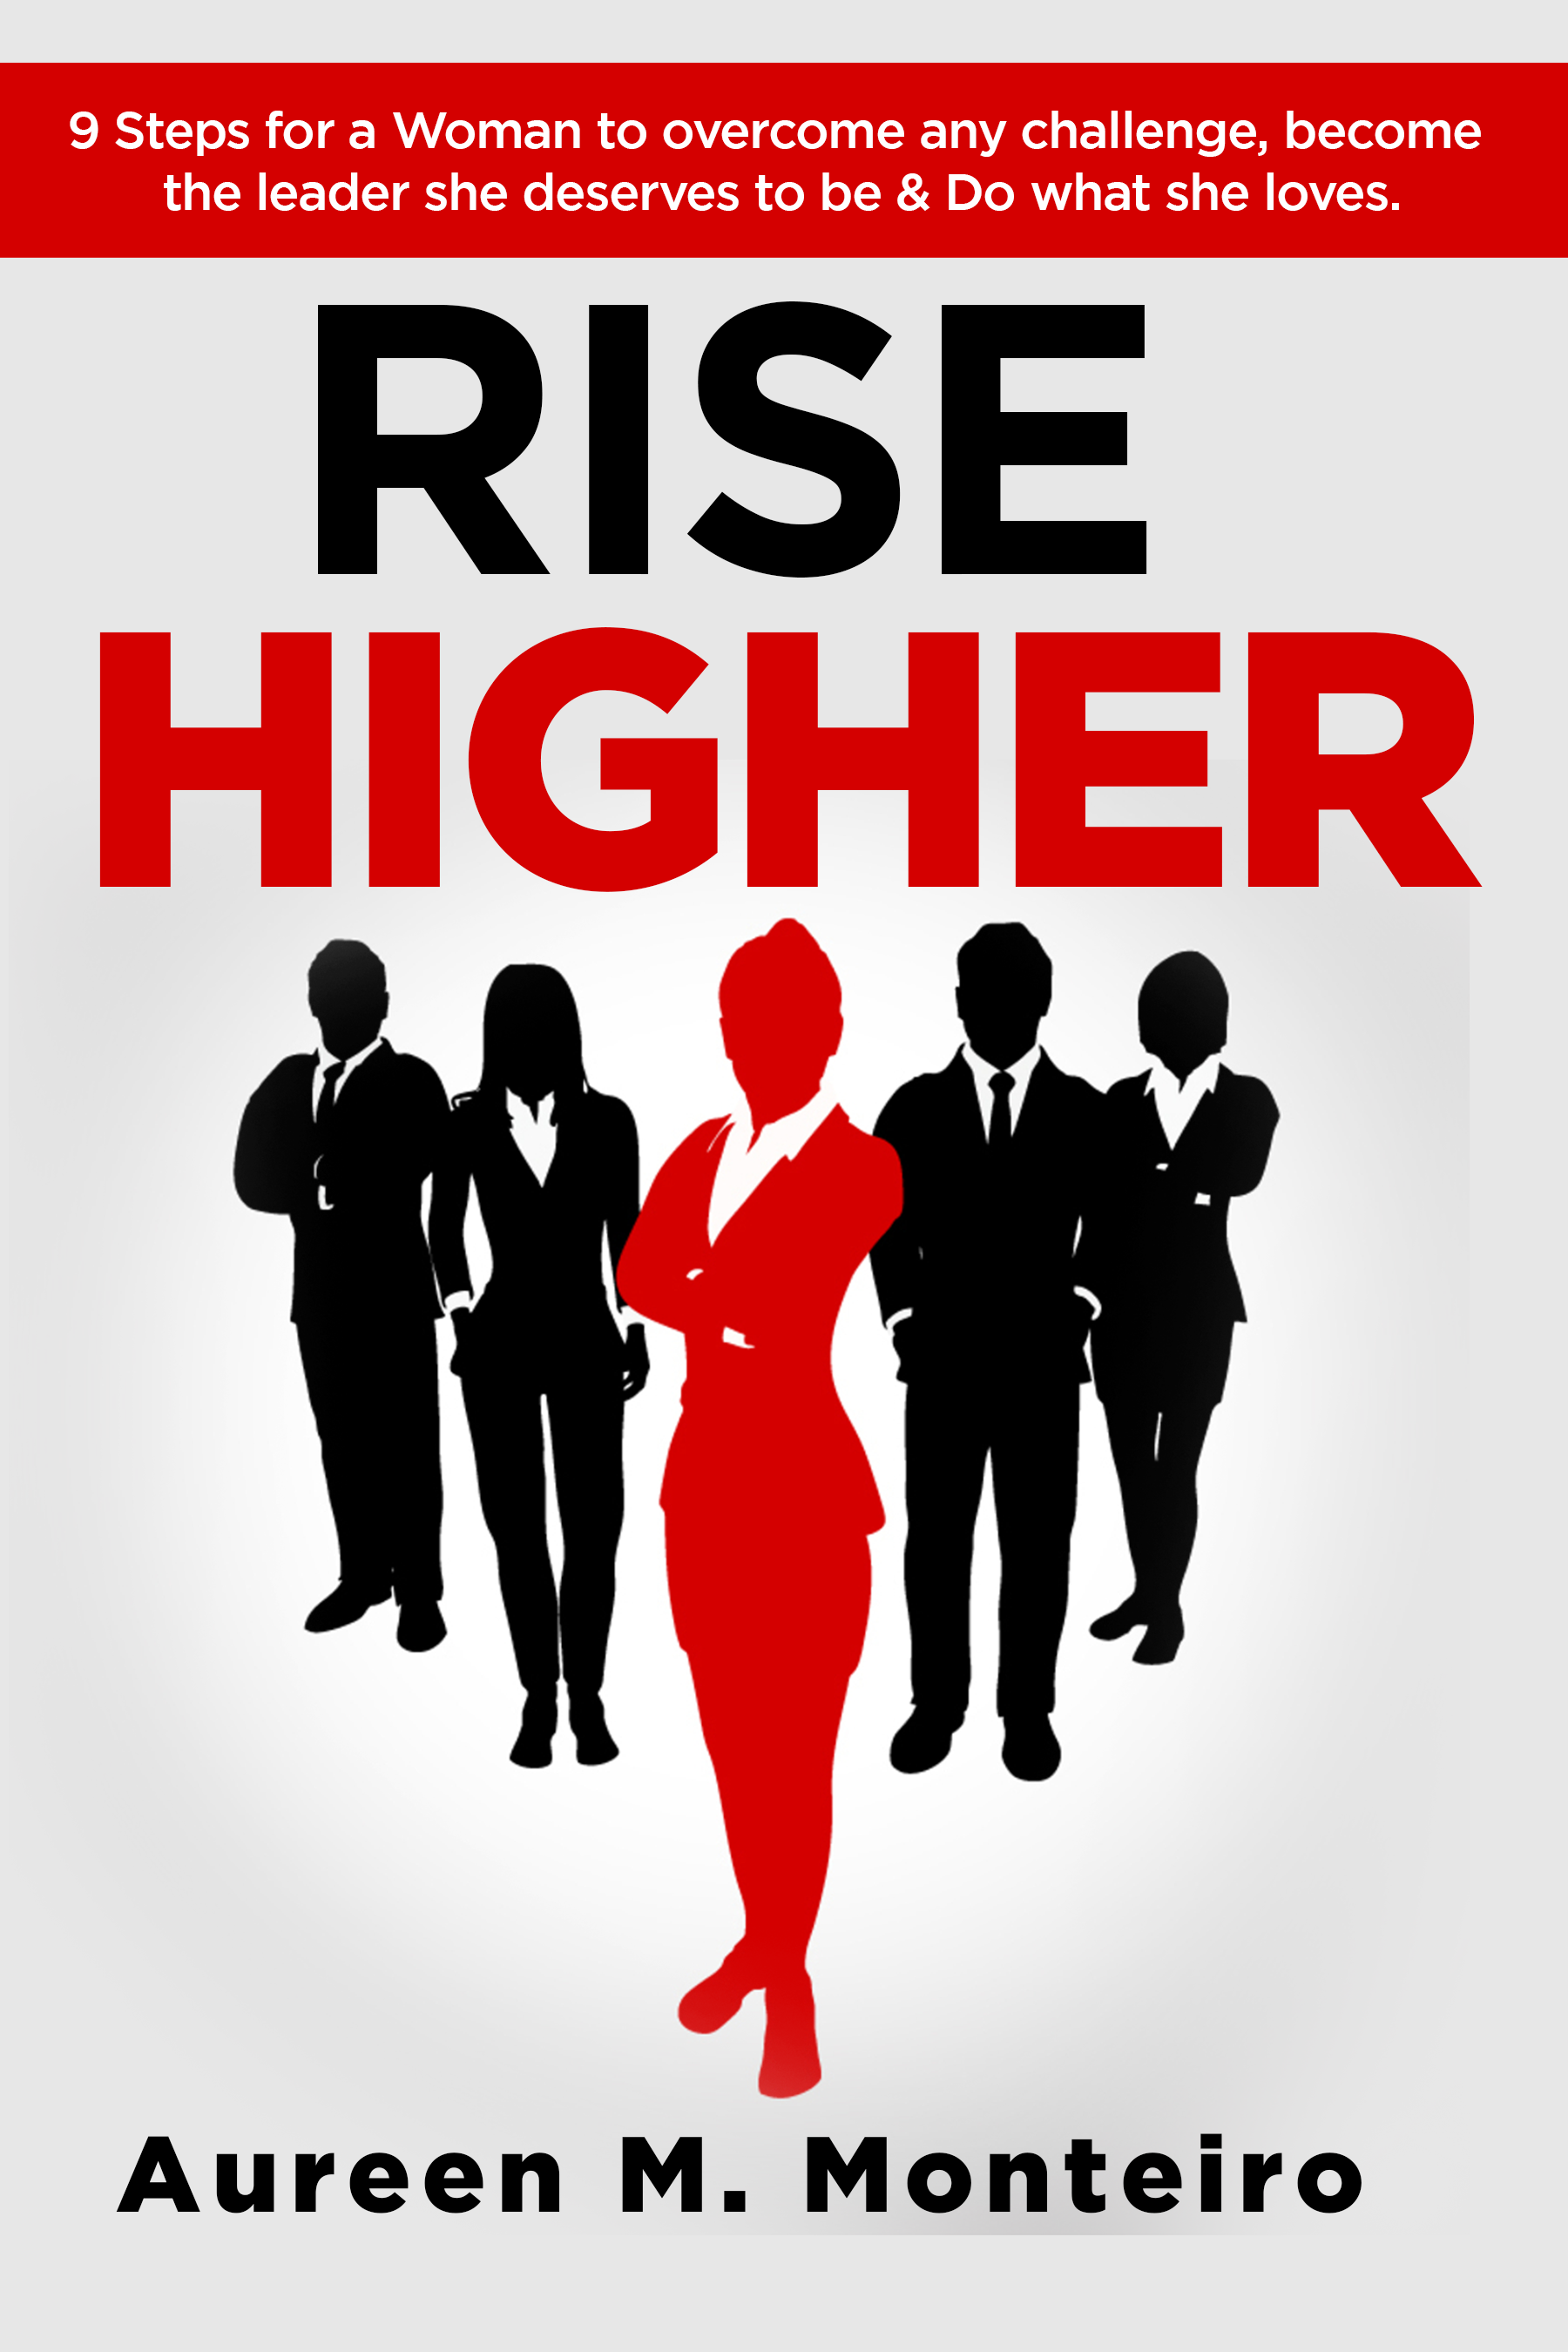 RISE Higher Book